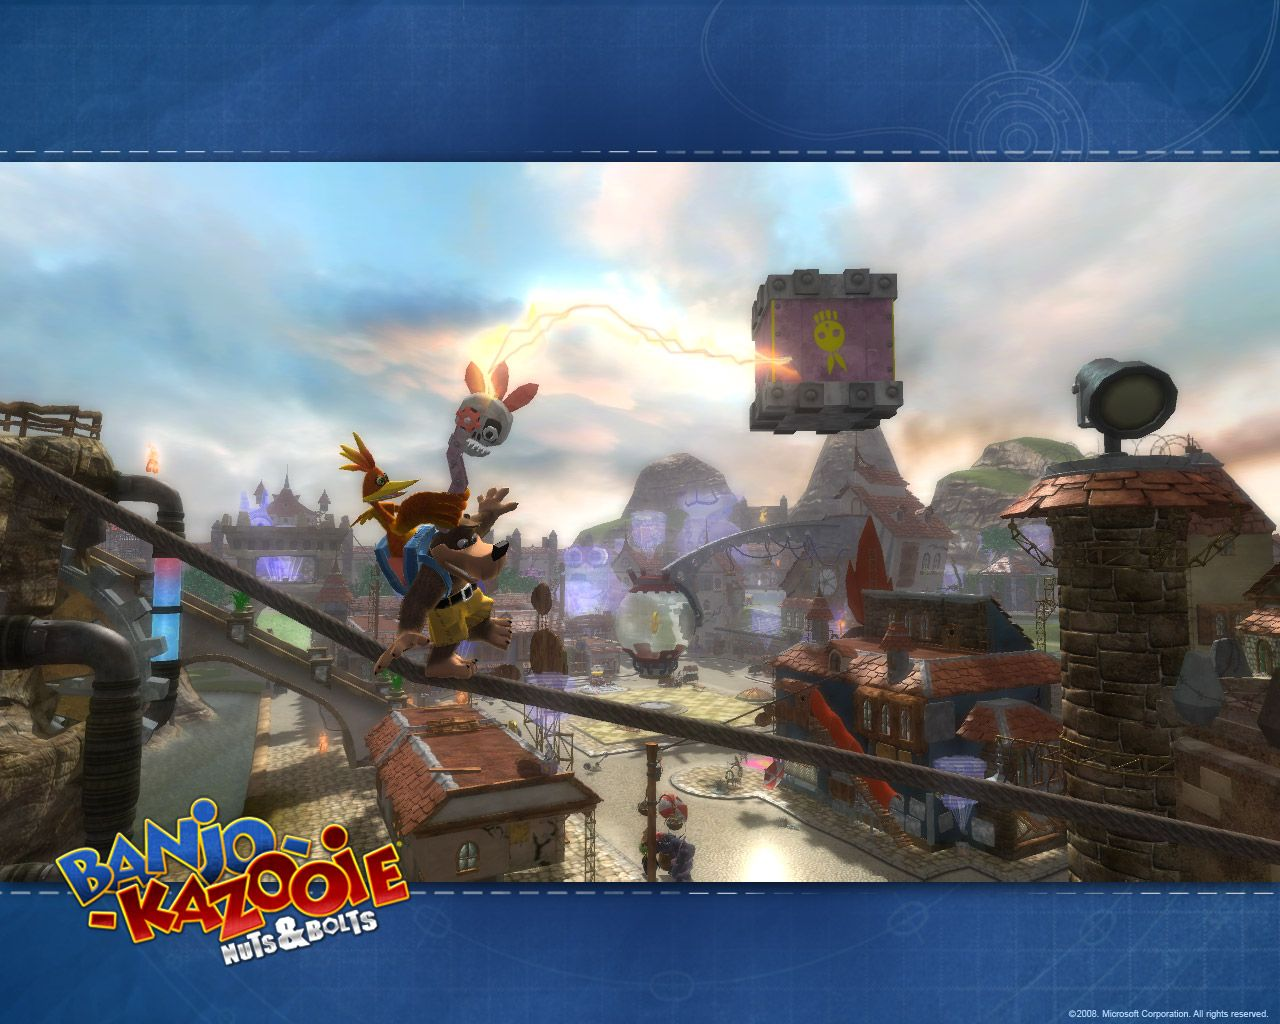 A Screenshot From The Xbox 360 Game Banjo Kazooie Nuts Bolts